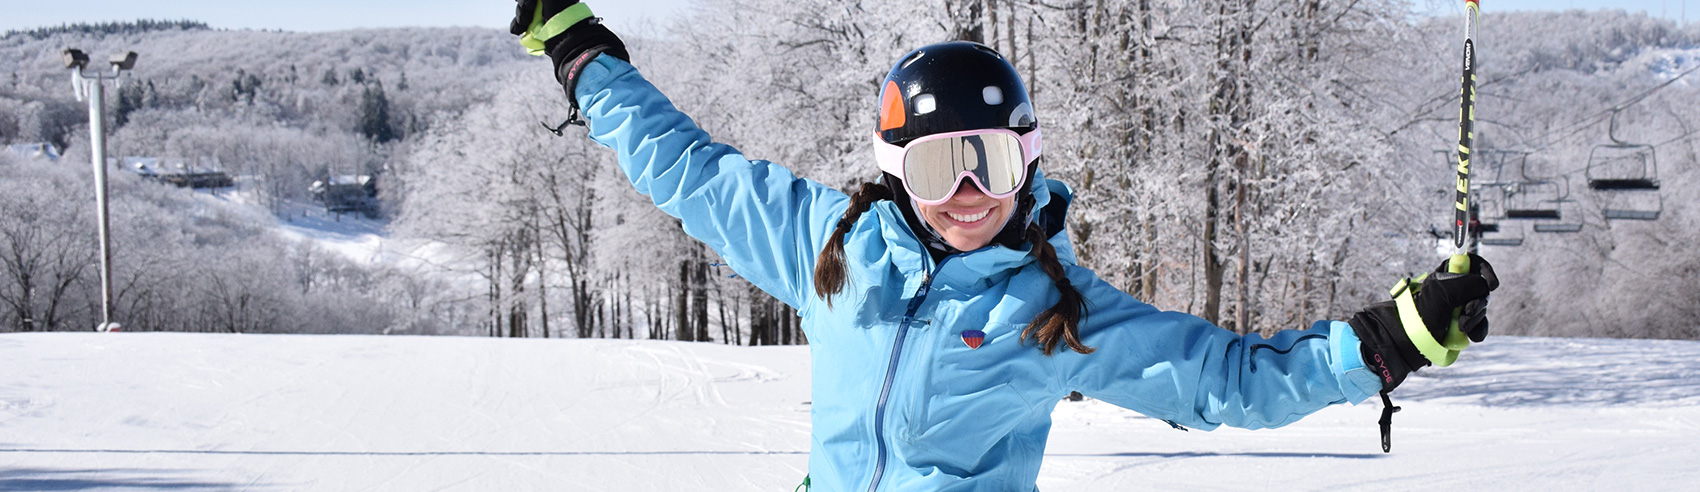 female-skier-excited-about-snow